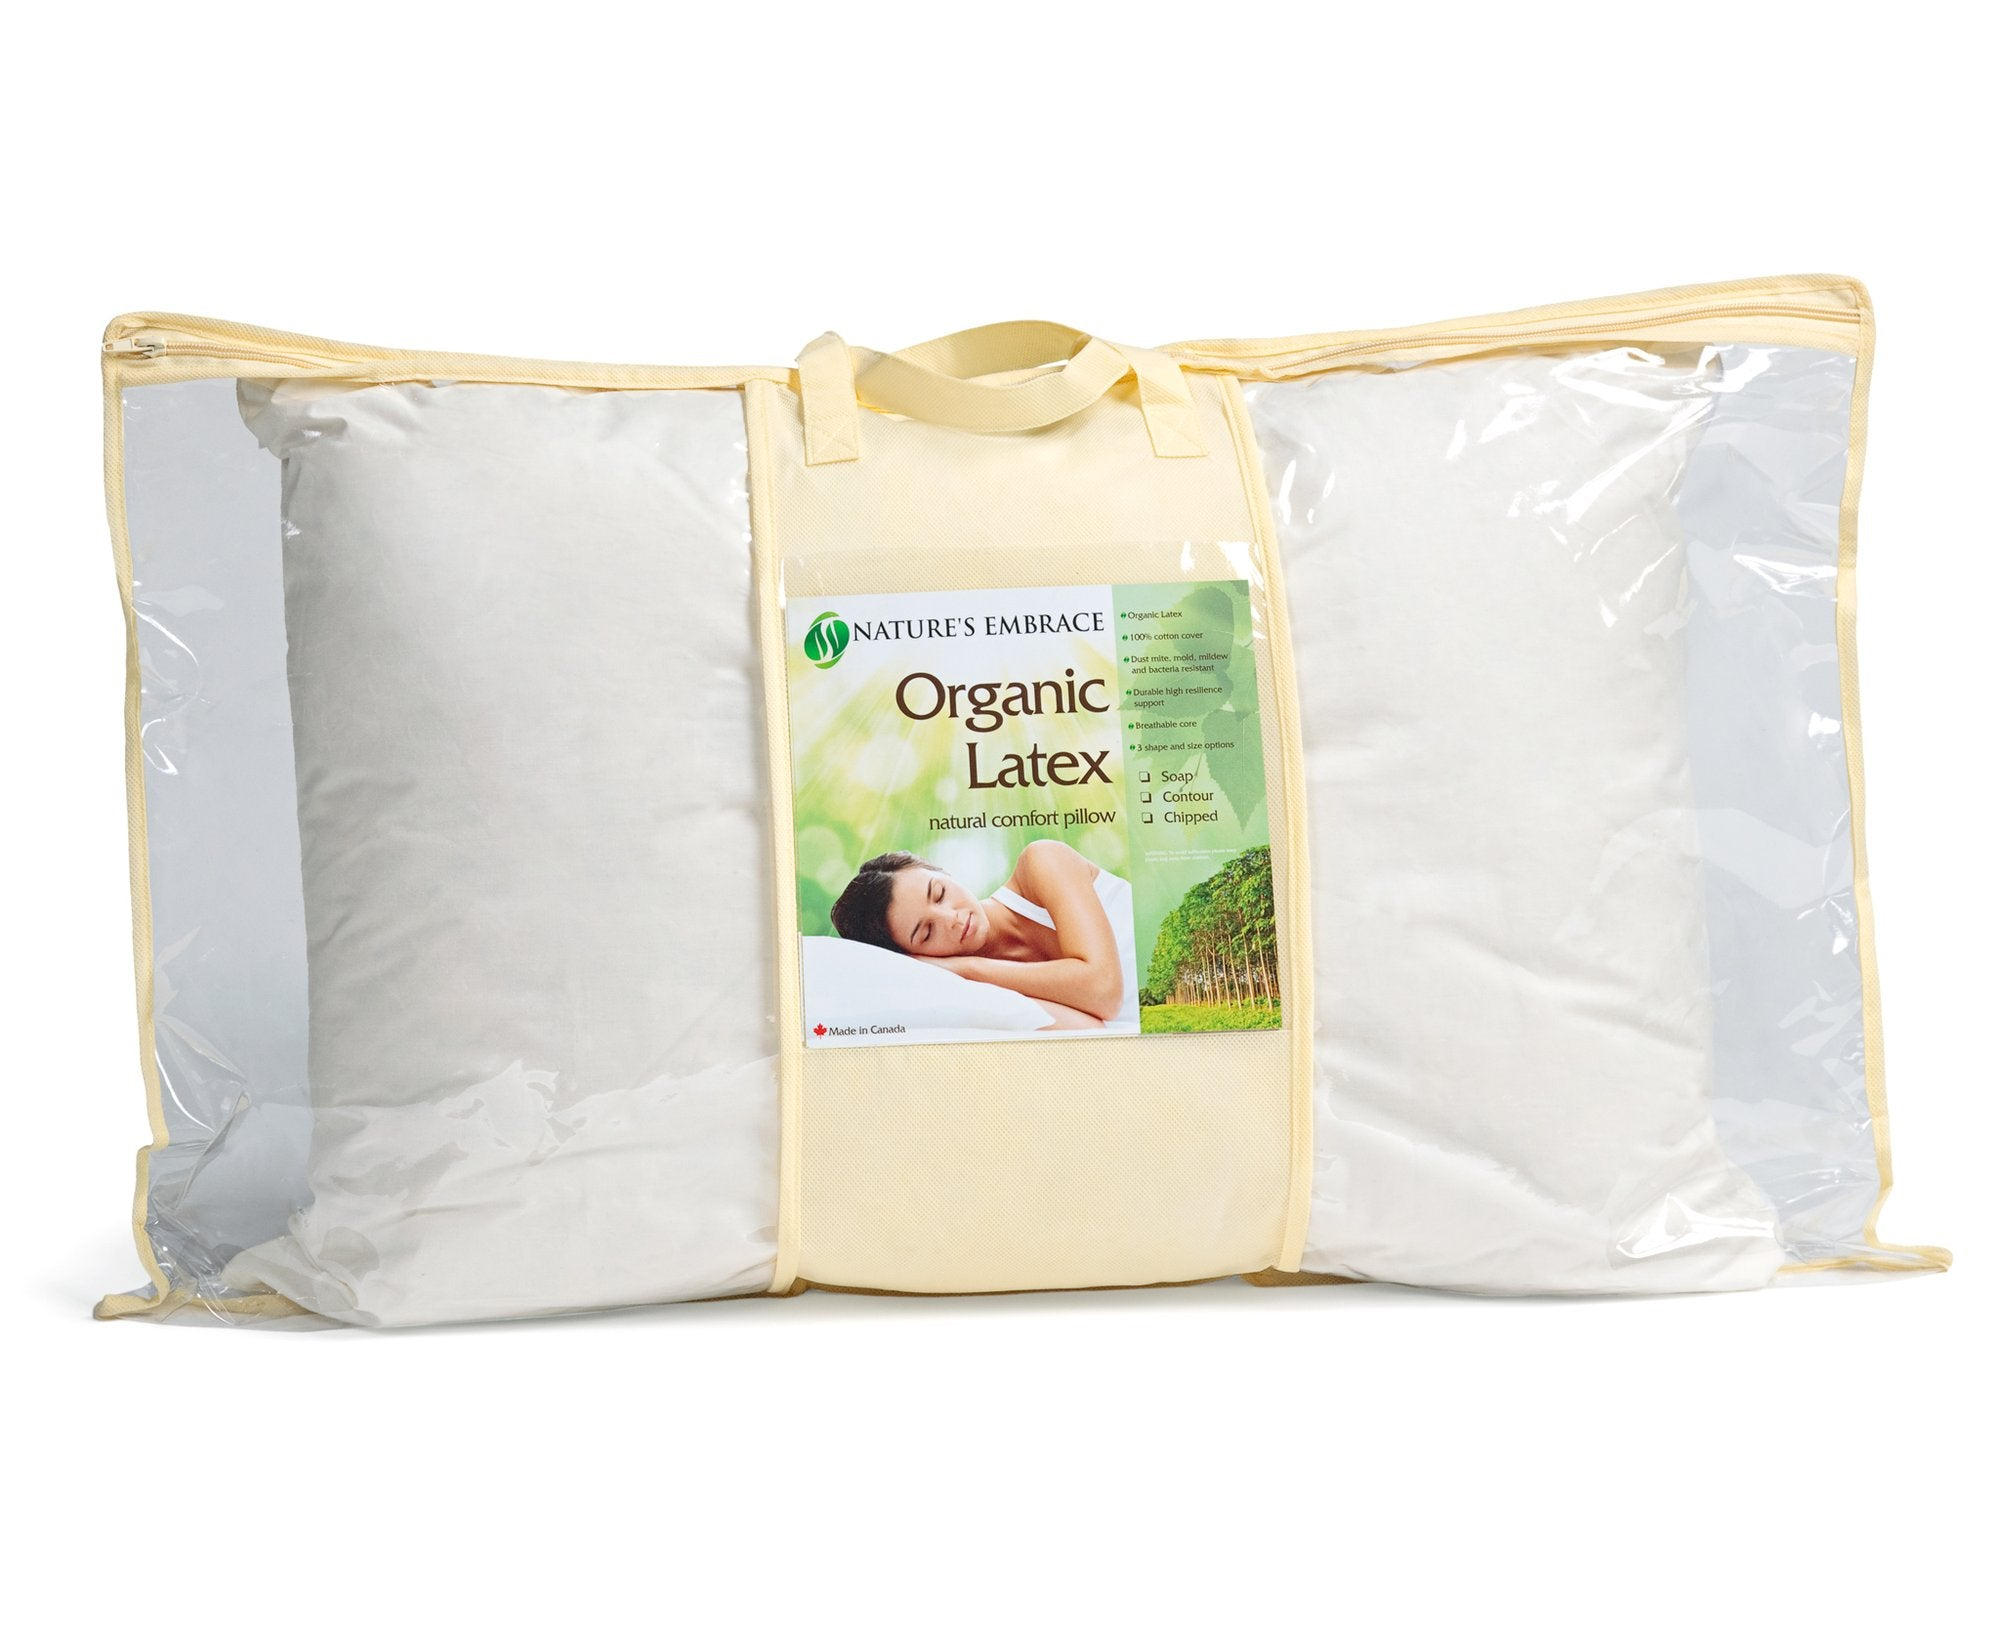 ORGANIC DUNLOP LATEX PILLOW